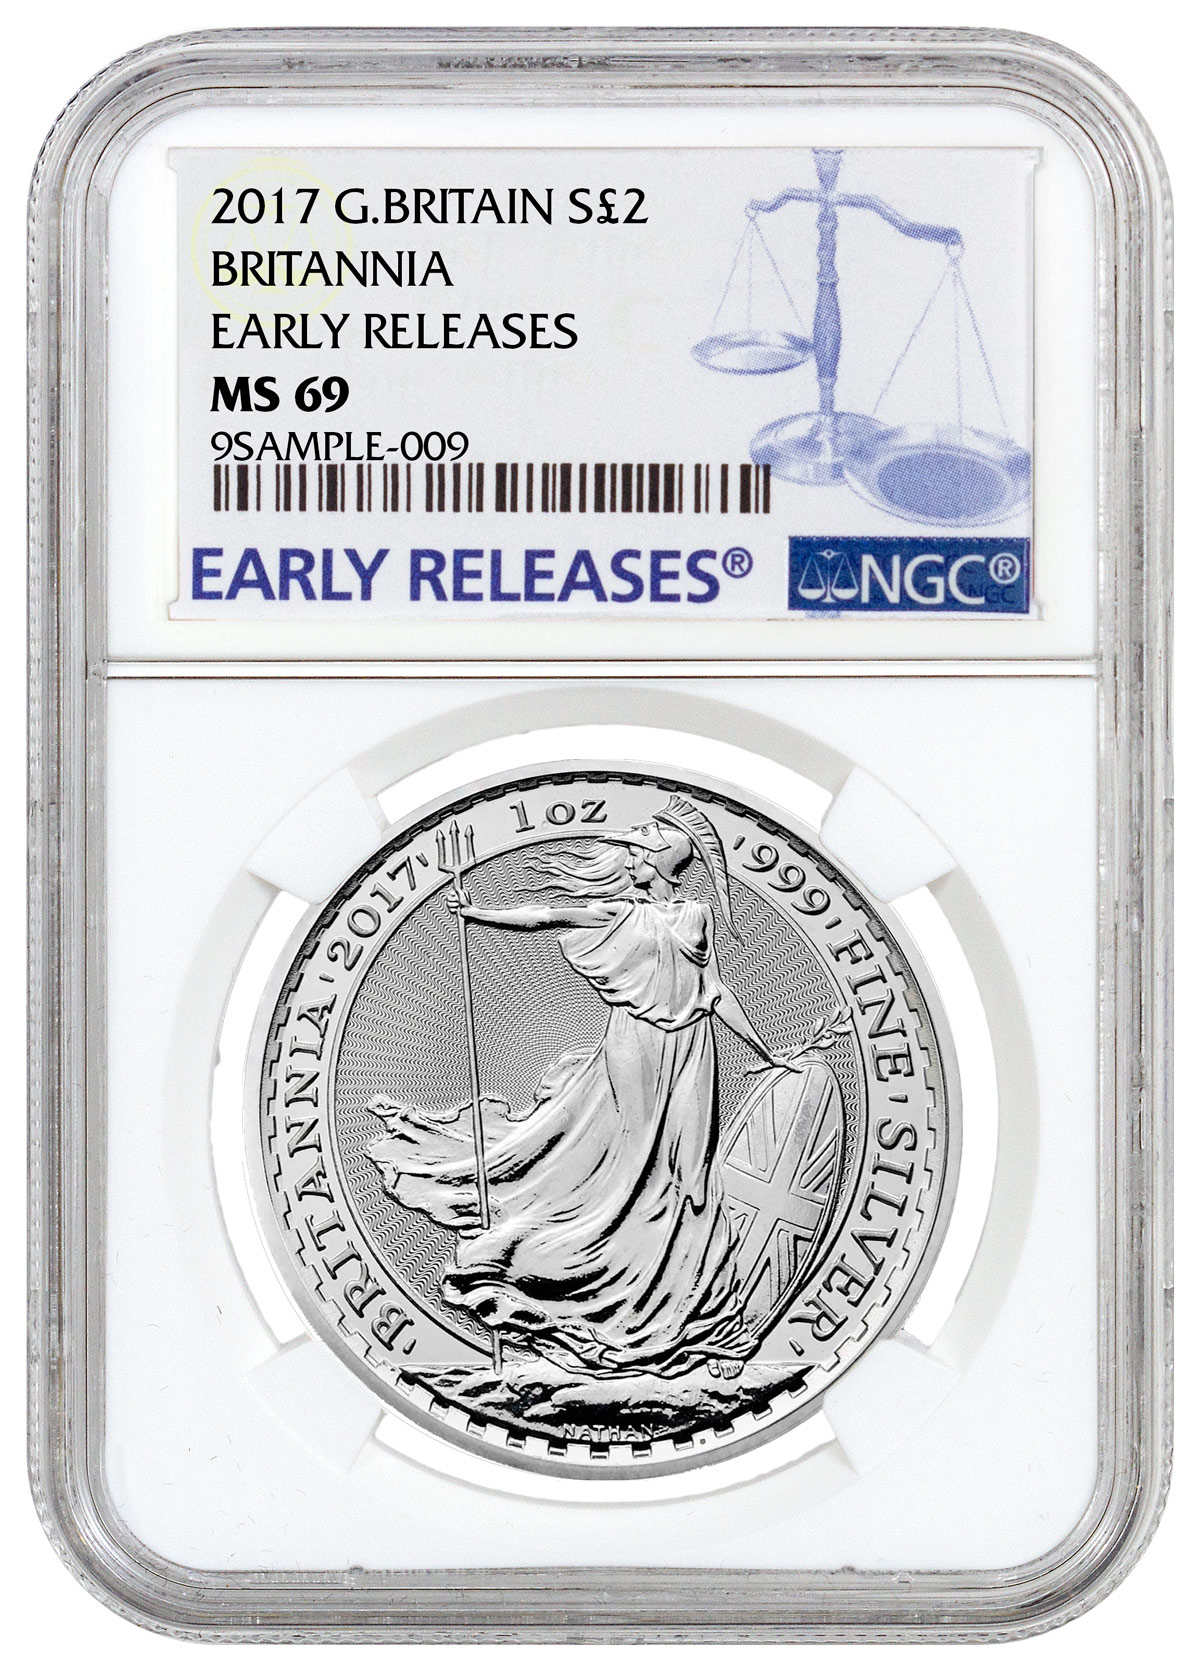 2017 Great Britain 1 oz Silver Britannia - £2 Coin NGC MS69 ER